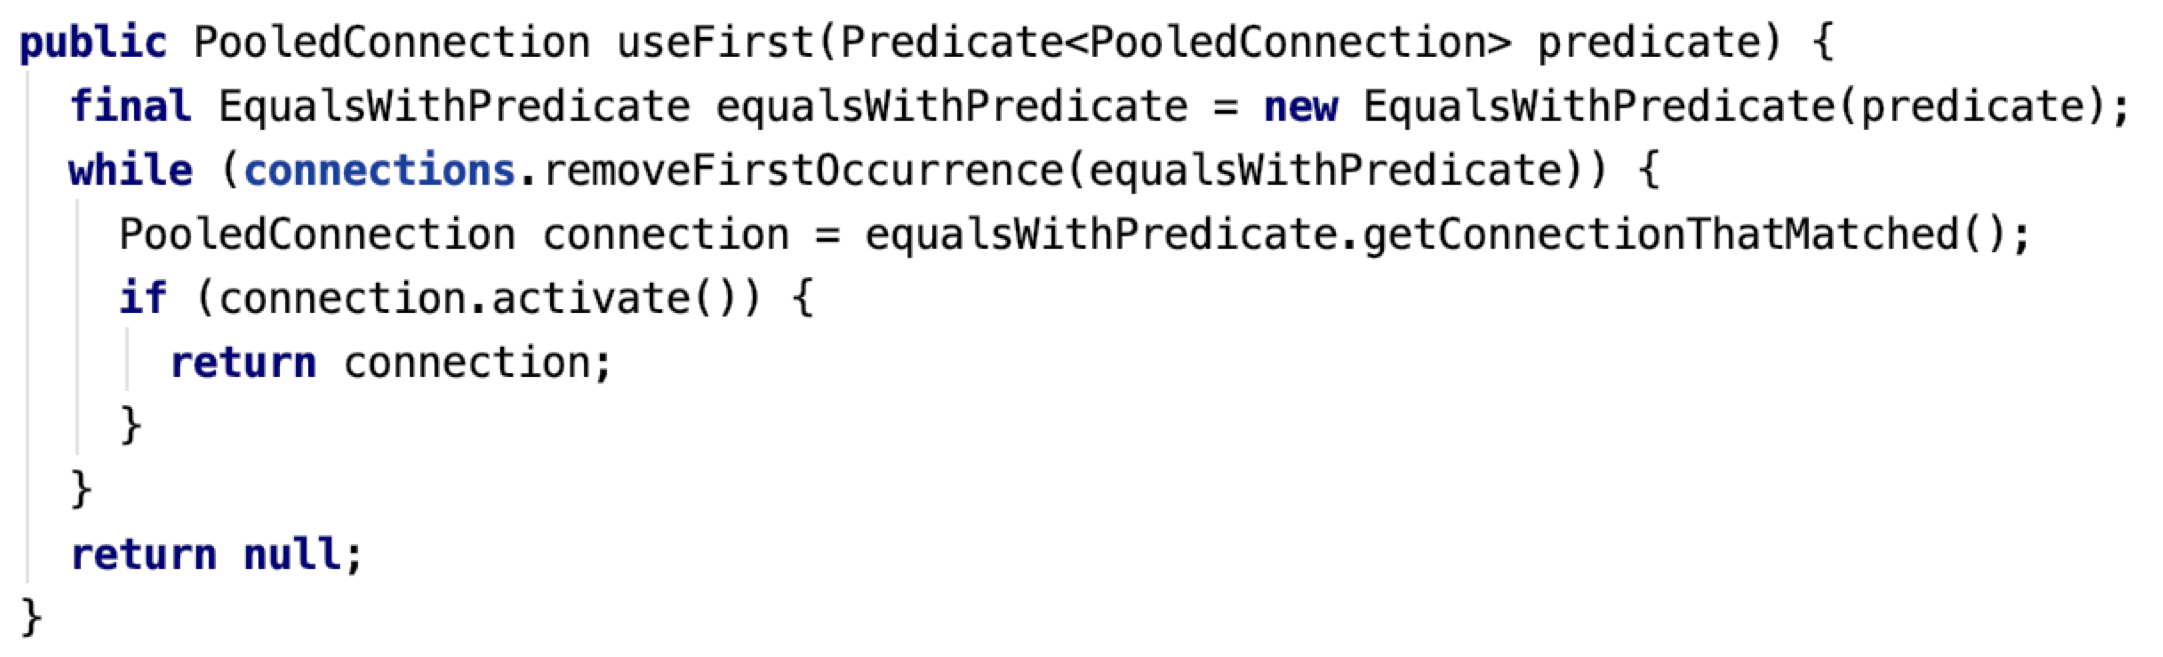 Figure 9: AvailableConnectionManager.useFirst() - code snippet that shows the useFirst method. The method no longer uses any locks, instead using ConcurrentLinkedDeque.removeFirstOccurence().